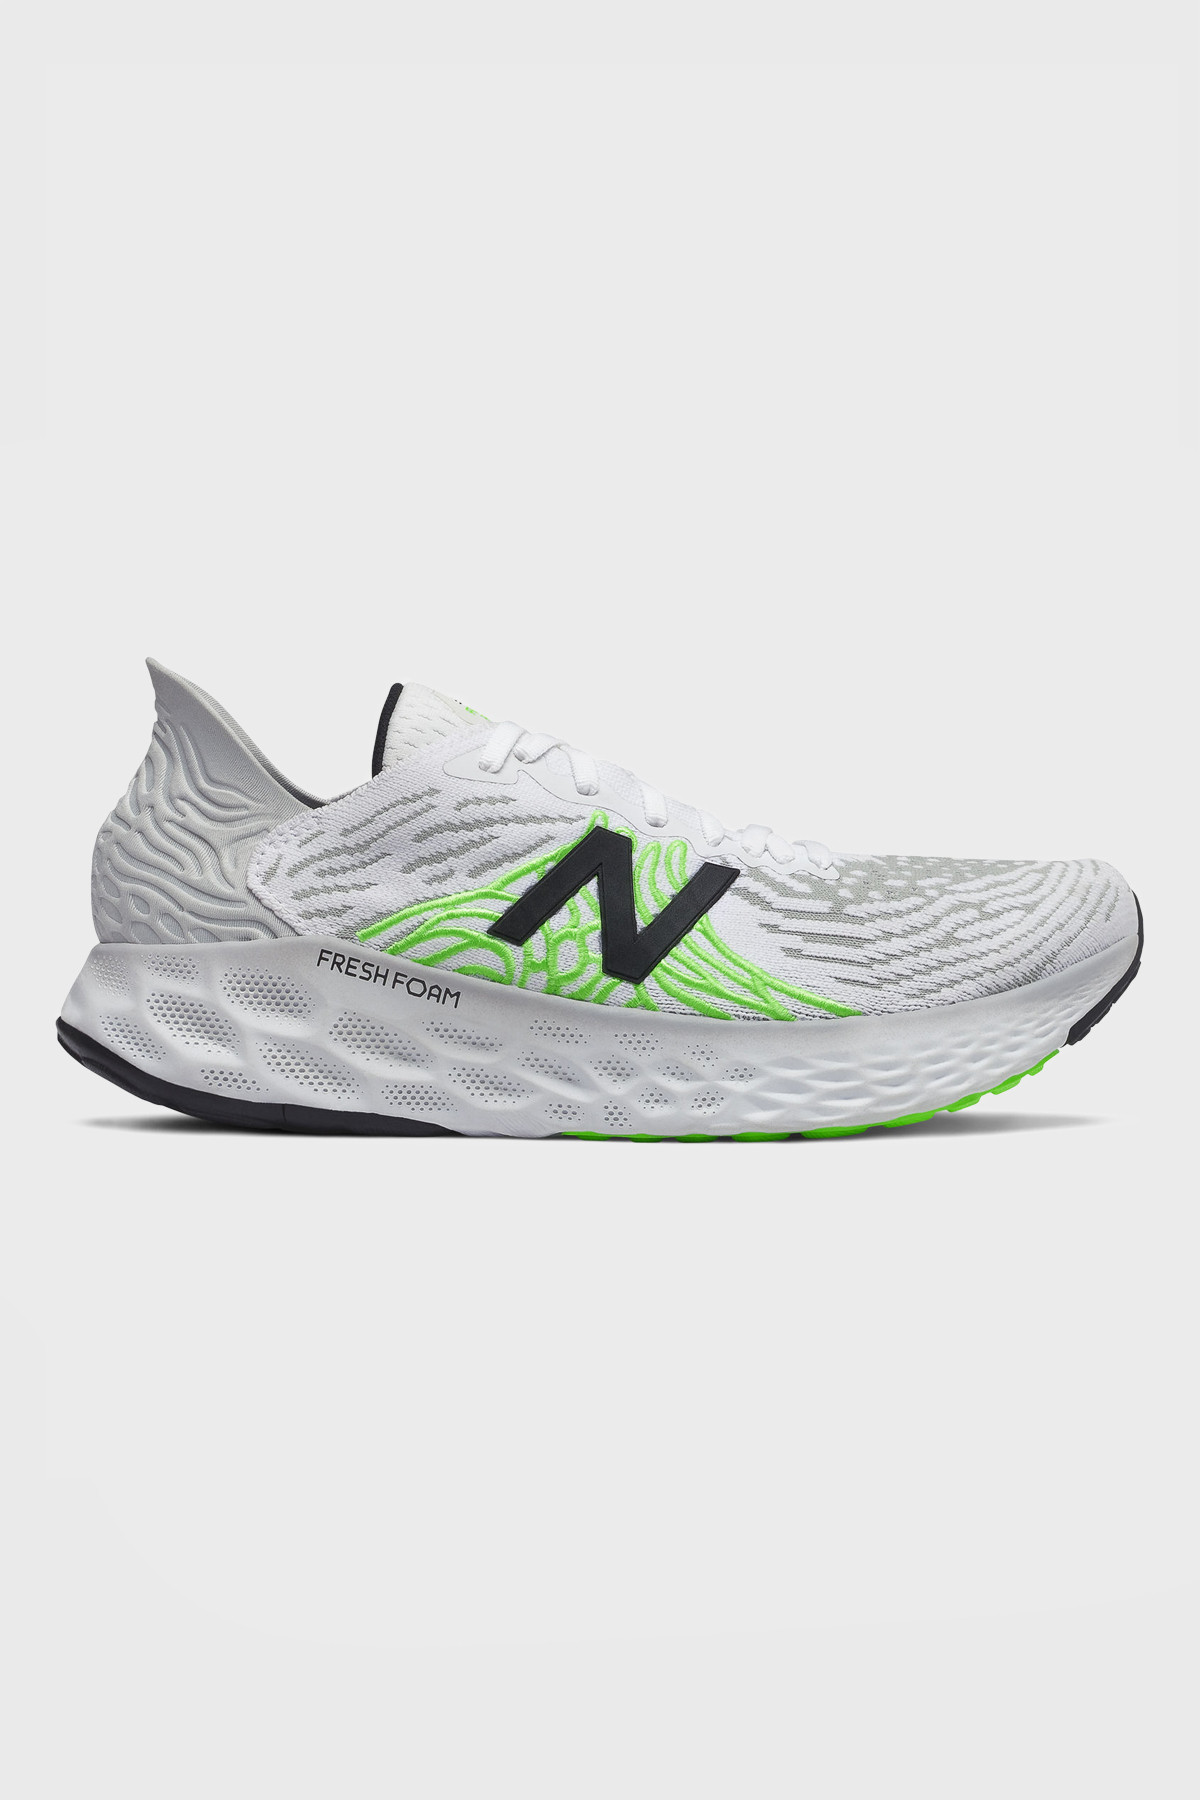 New Balance - 1080 V10 Fresh Foam X - White Energy Lime